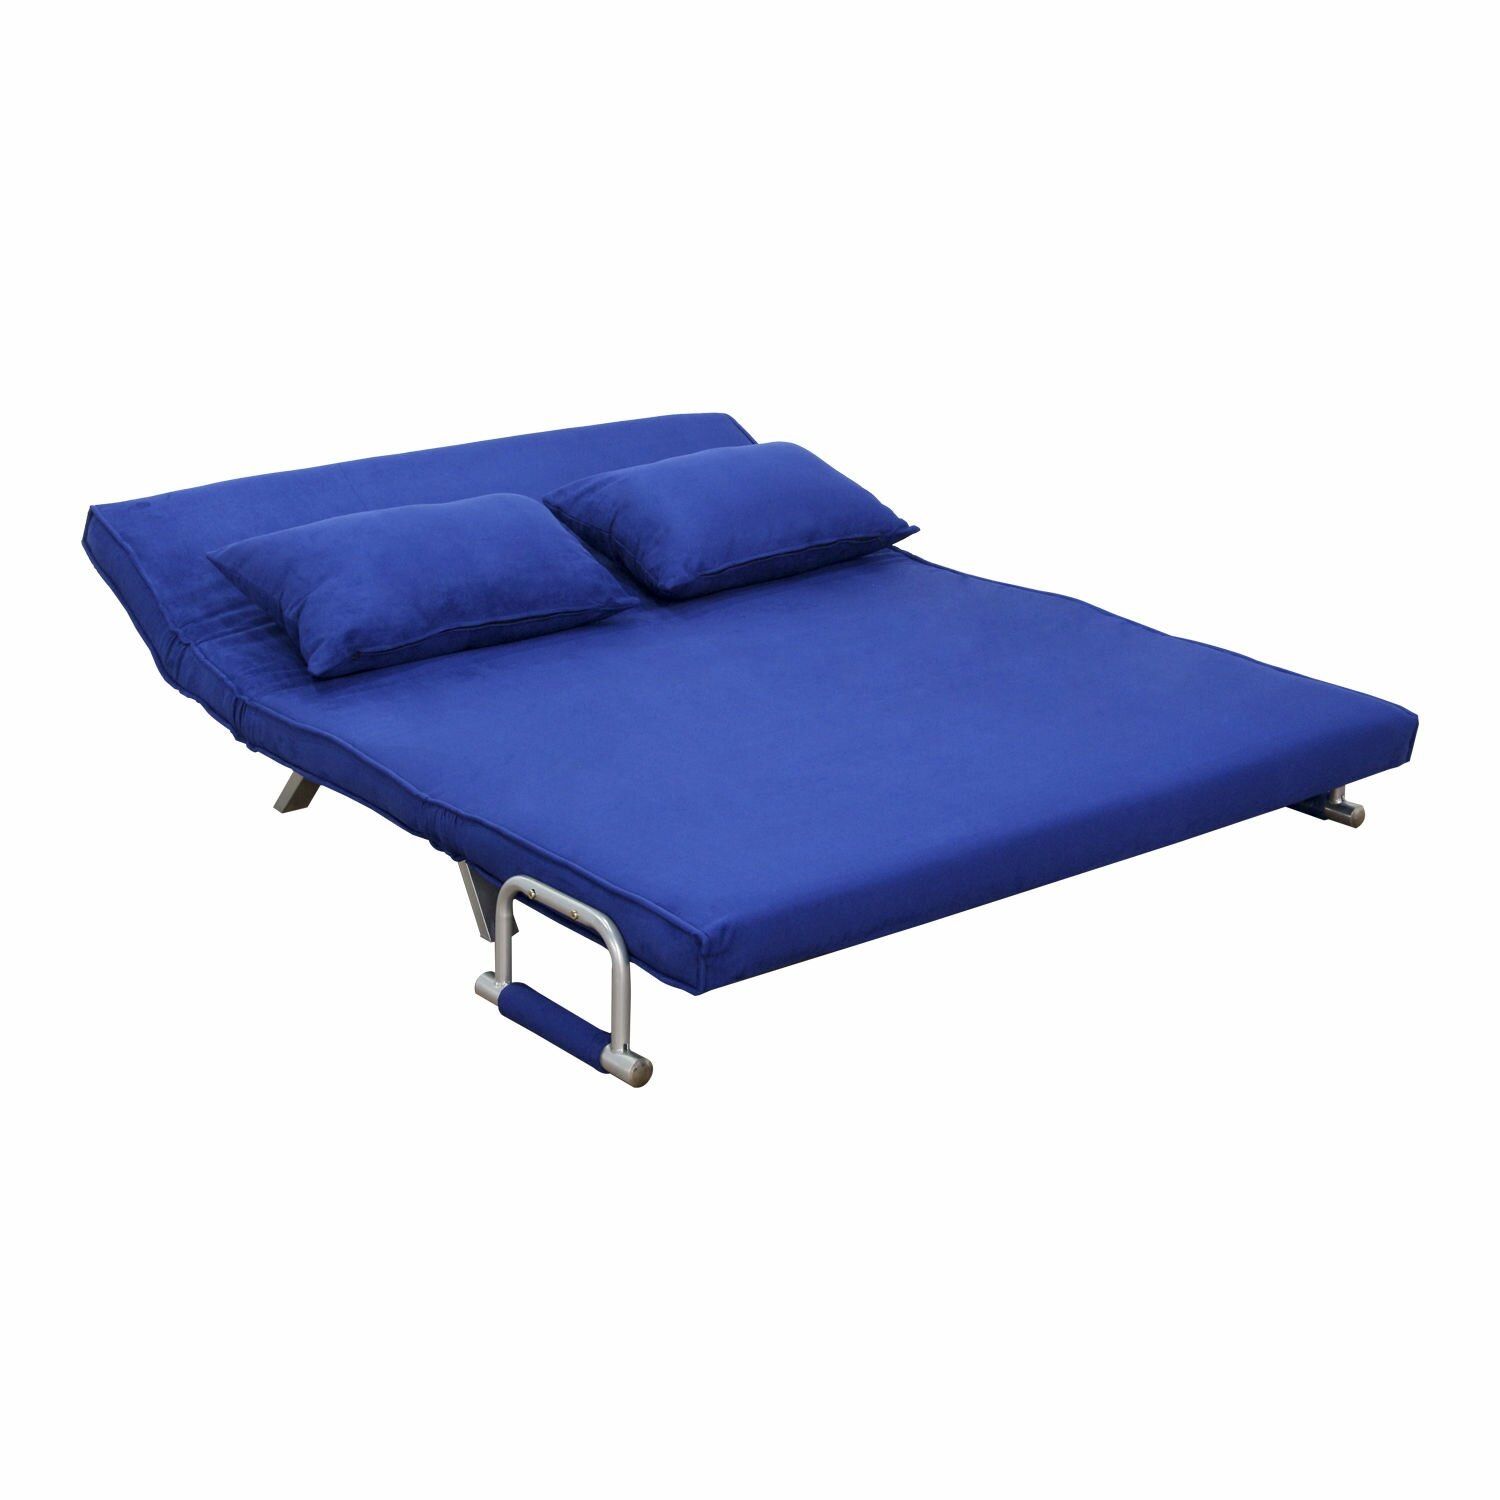 Futon Nest Chair Armchair Fabric Futon Bed Dice Karup Partners As Futon Chair Futon